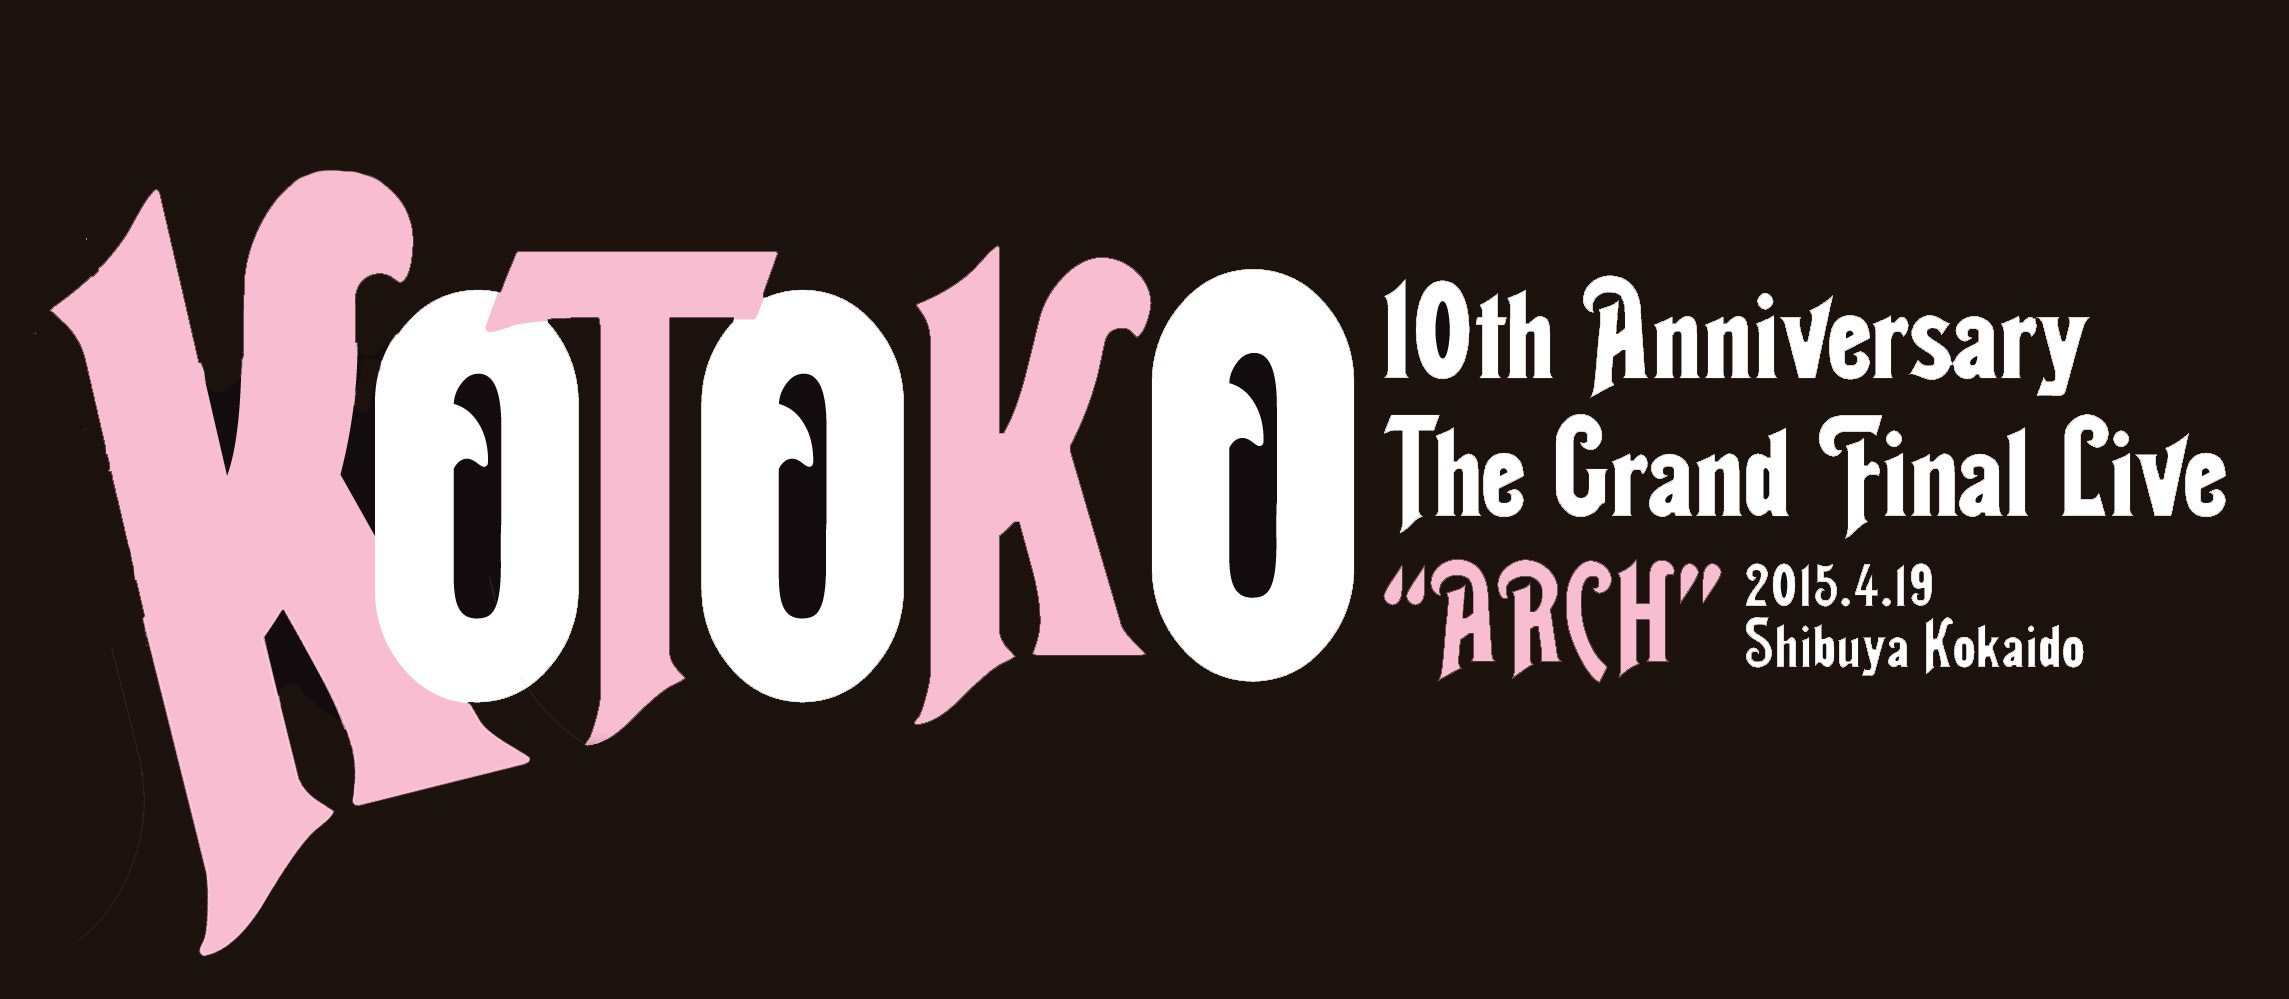 "【メモ】KOTOKO 10th Anniversary The Grand Final Live ""ARCH"" 渋谷公会堂"